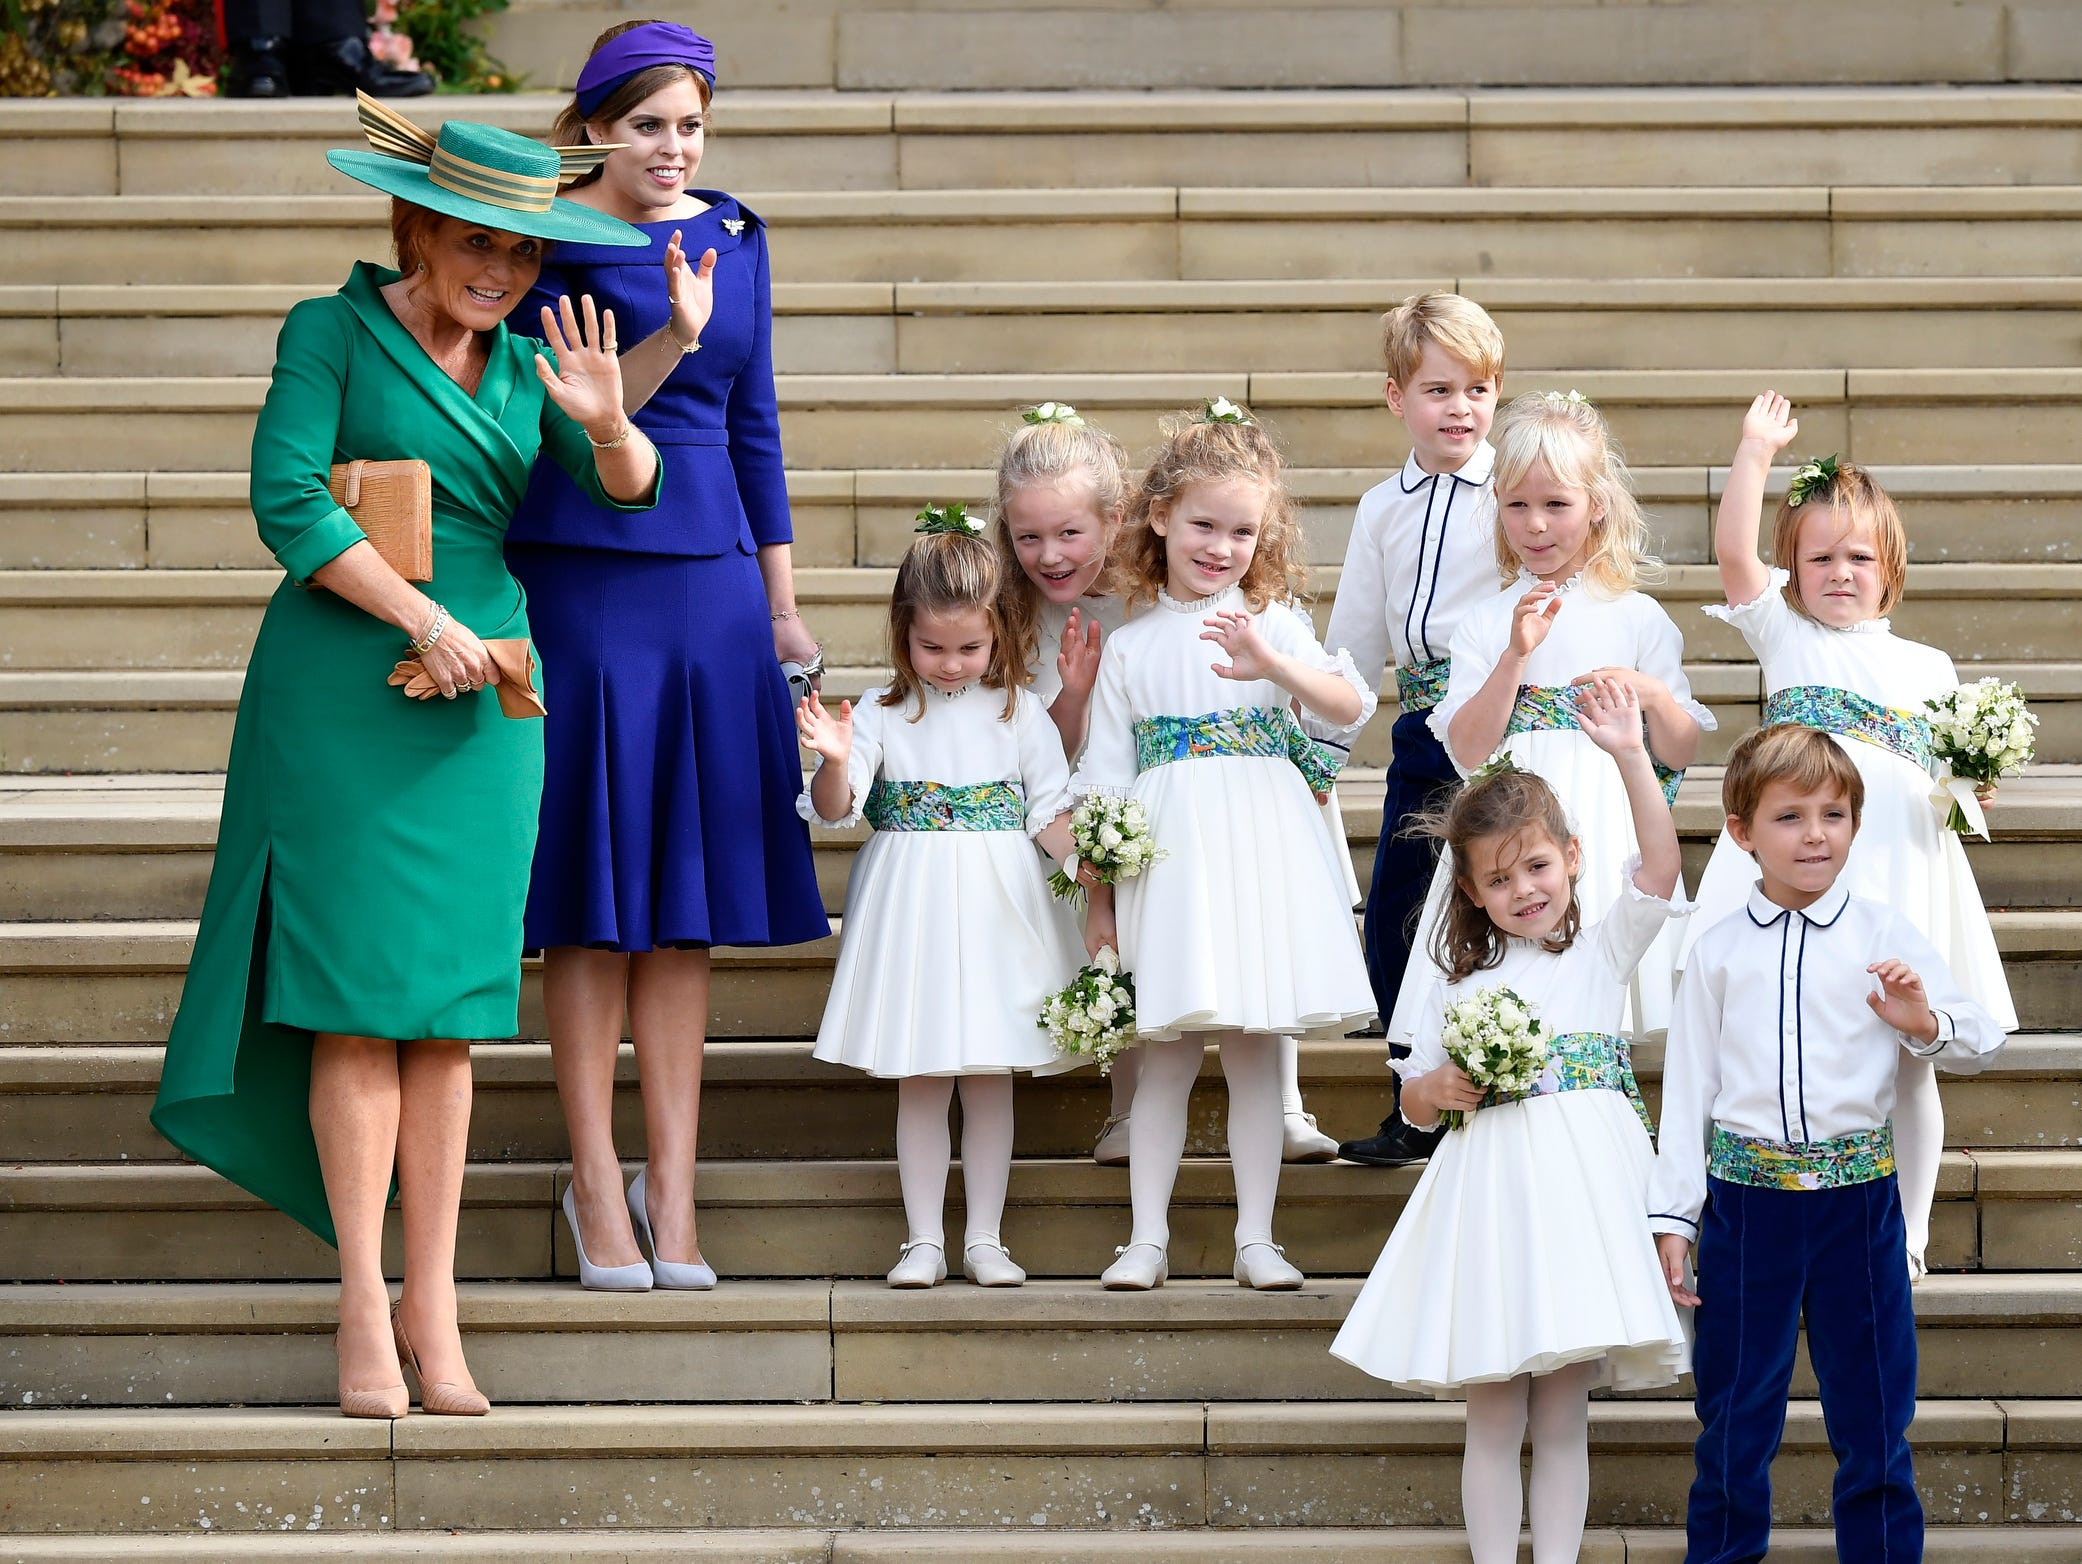 Sarah Ferguson, left her daughter Princess Beatrice, the bridesmaids and page boys, including Prince George and Princess Charlotte, wave after the wedding of Princess Eugenie of York and Jack Brooksbank, Friday.